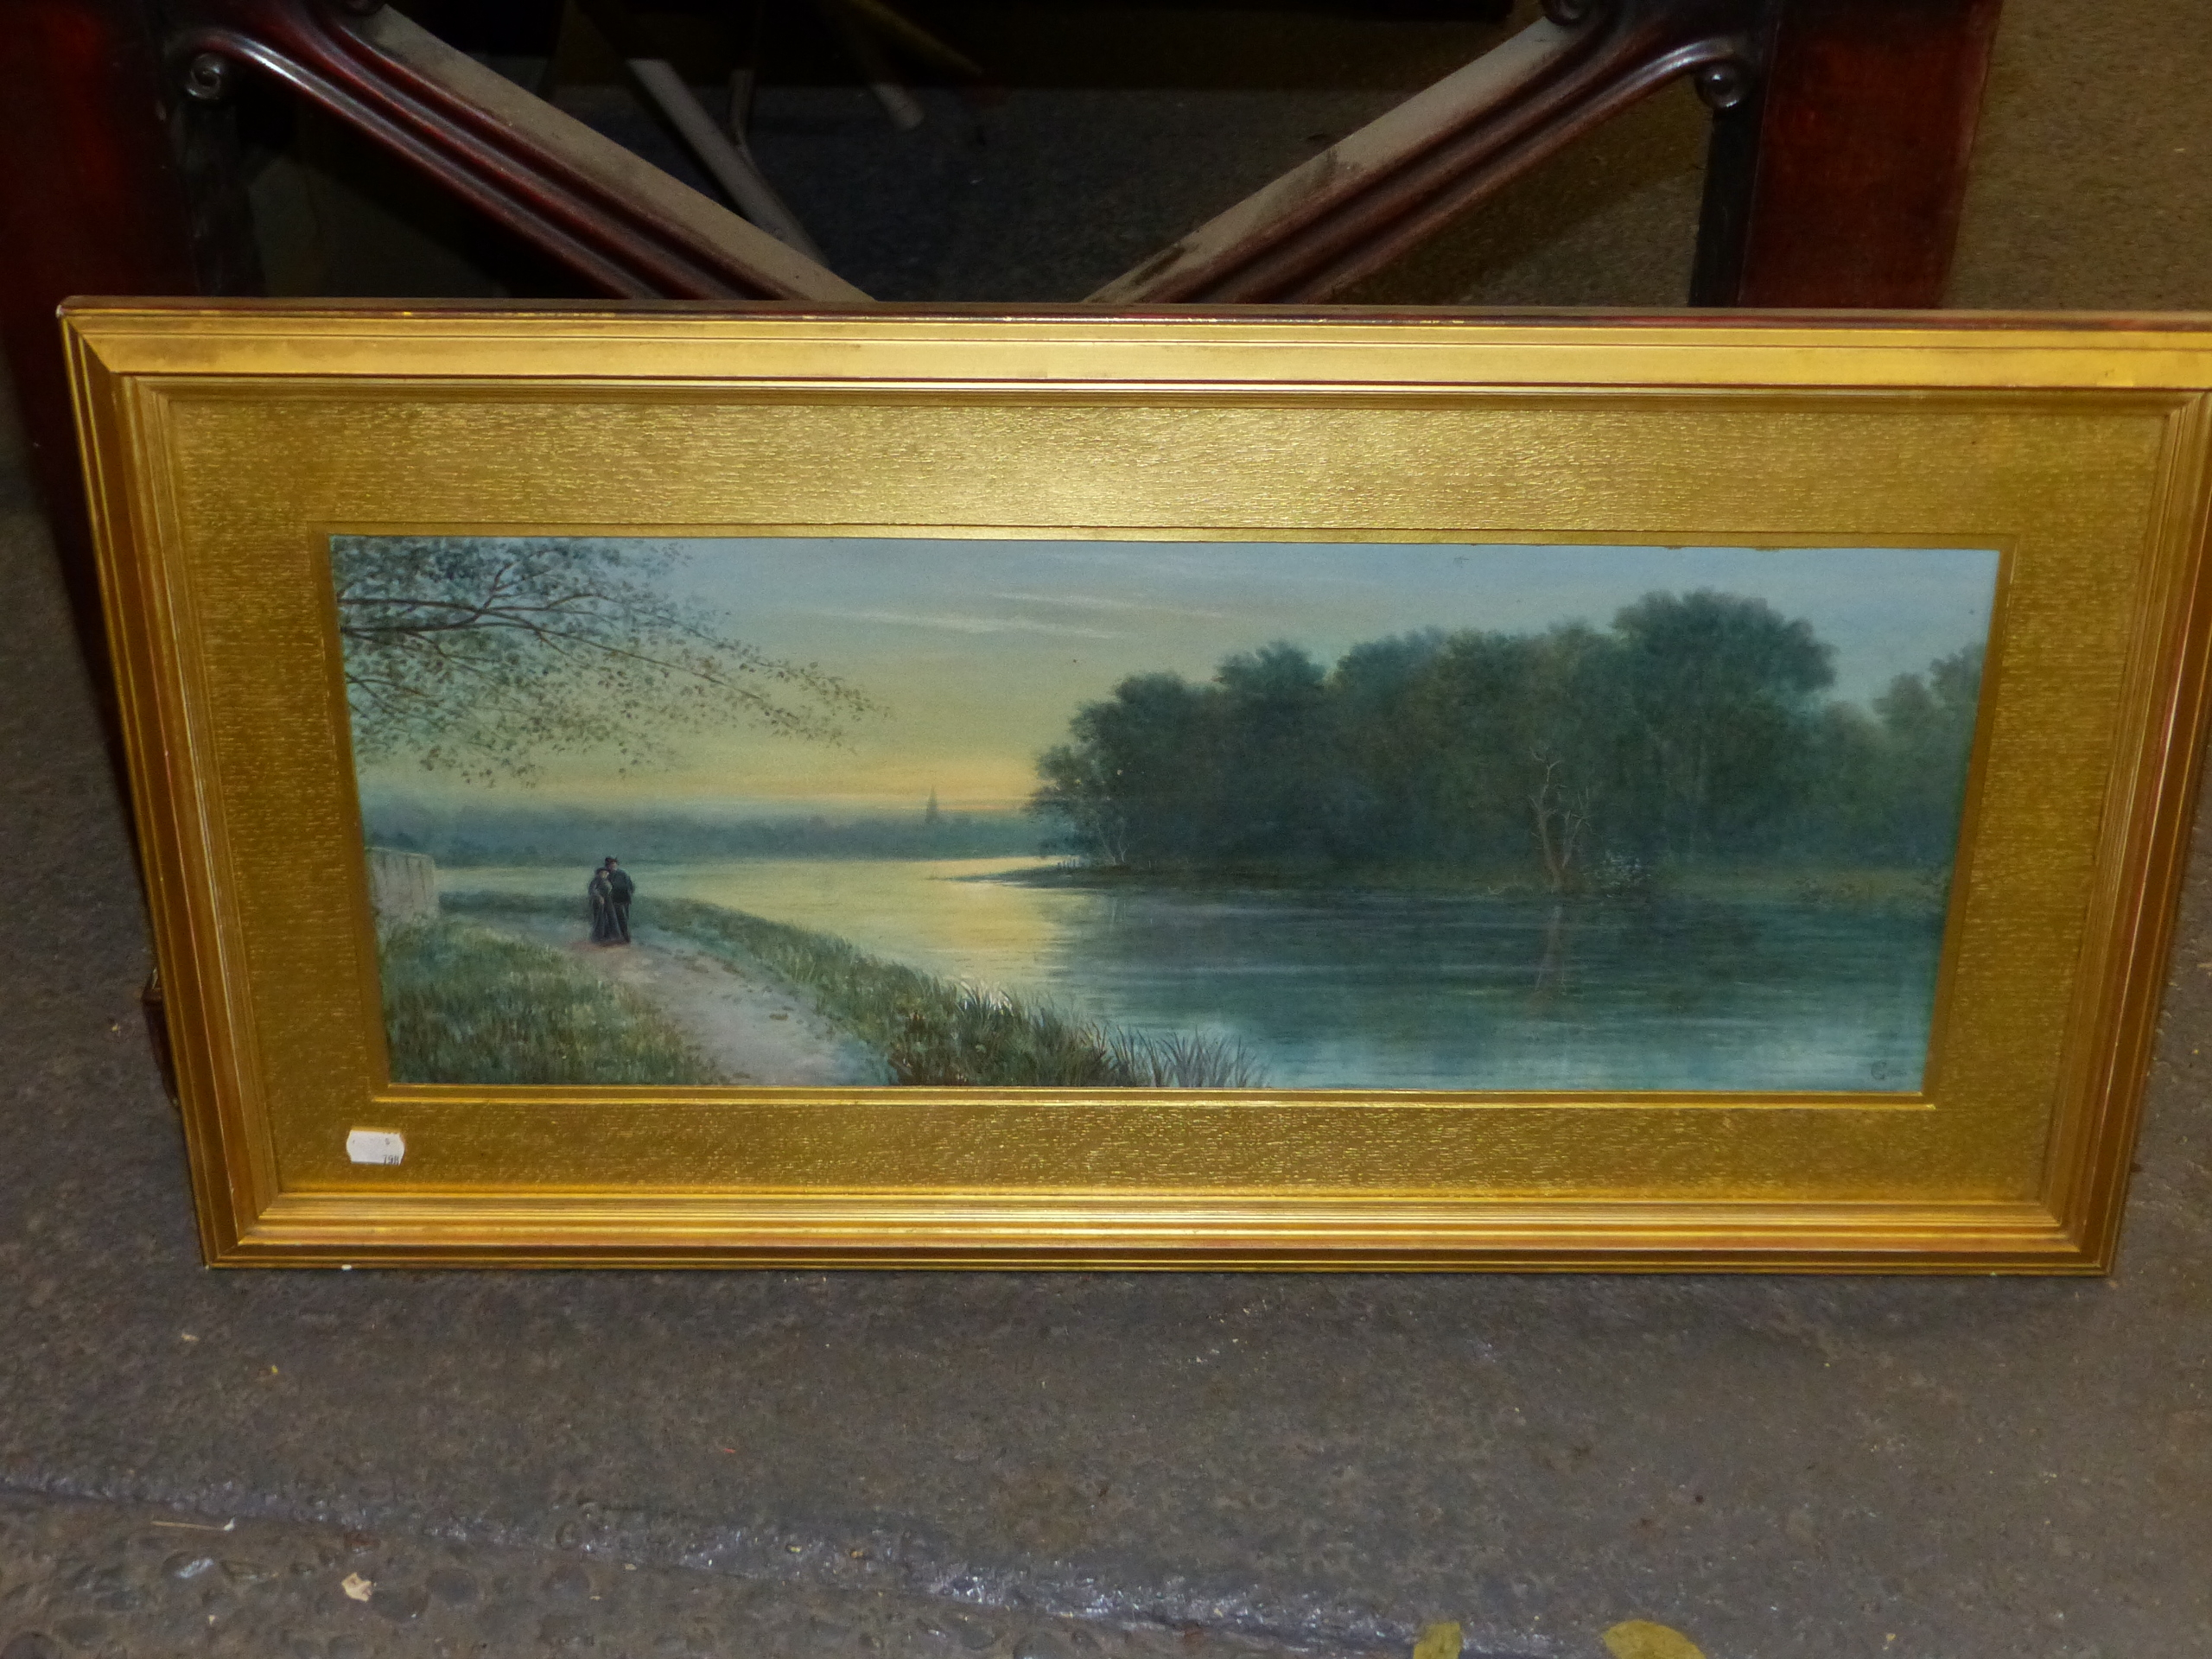 19th/20th C. ENGLISH SCHOOL HOMEWARD BOUND, SIGNED INDISTINCTLY WATERCOLOUR. 28 x 46 cms TOGETHER - Image 11 of 15